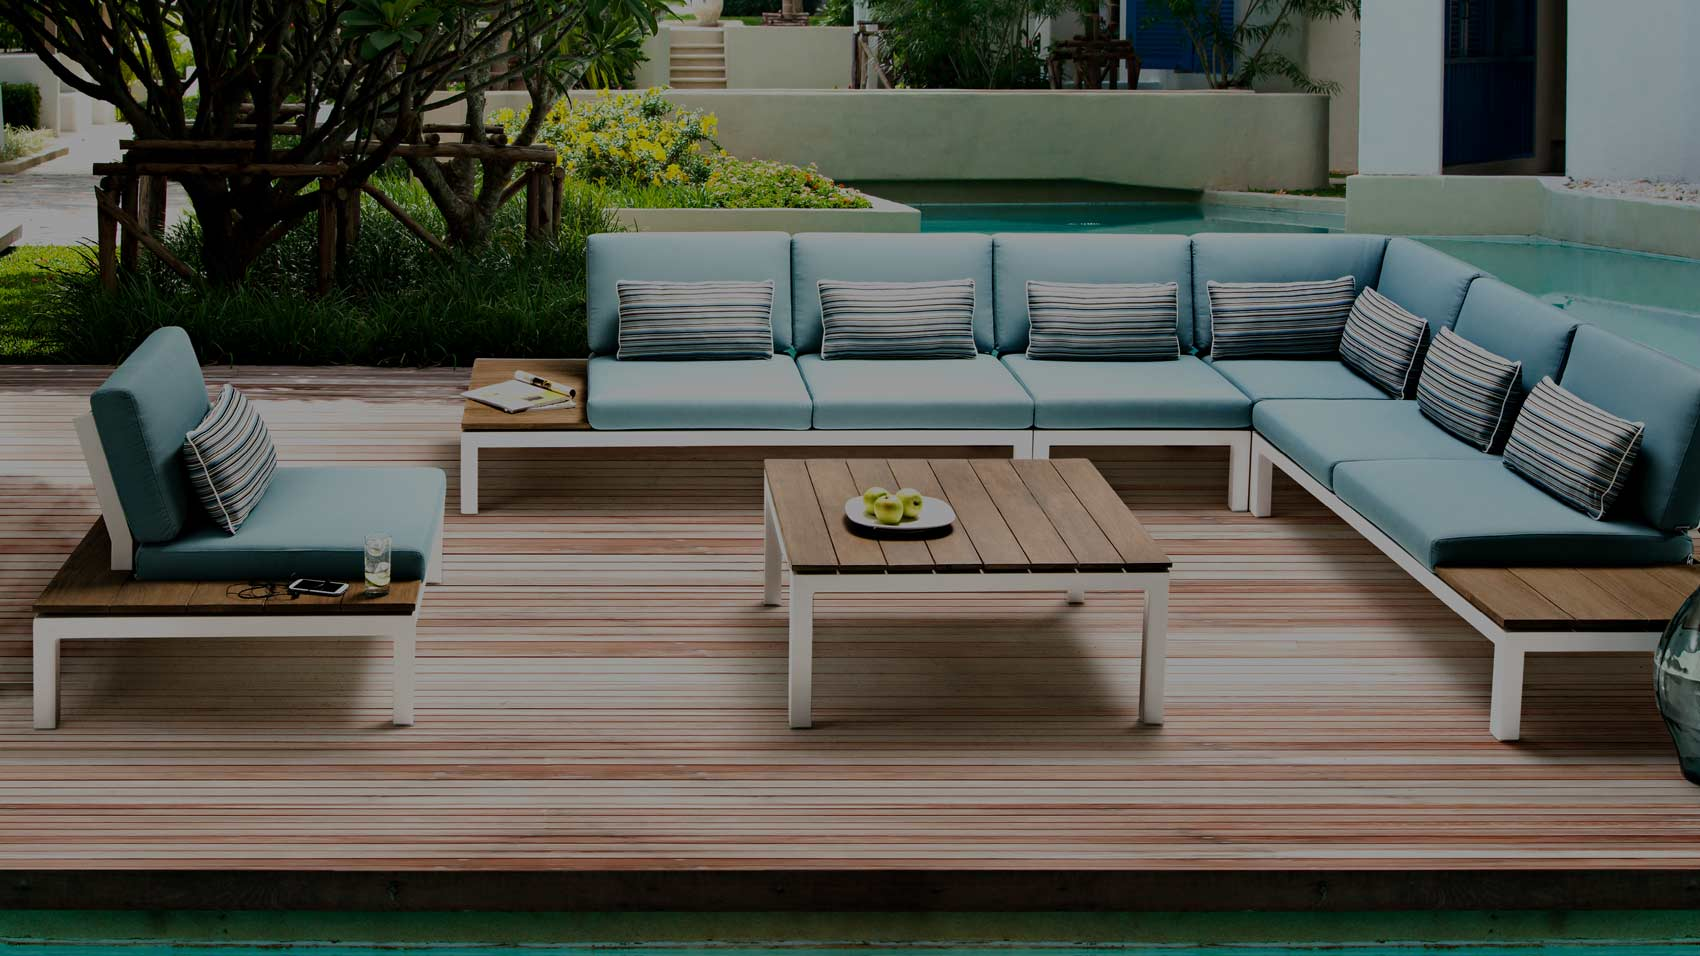 Satariano brands applebee outdoor furniture